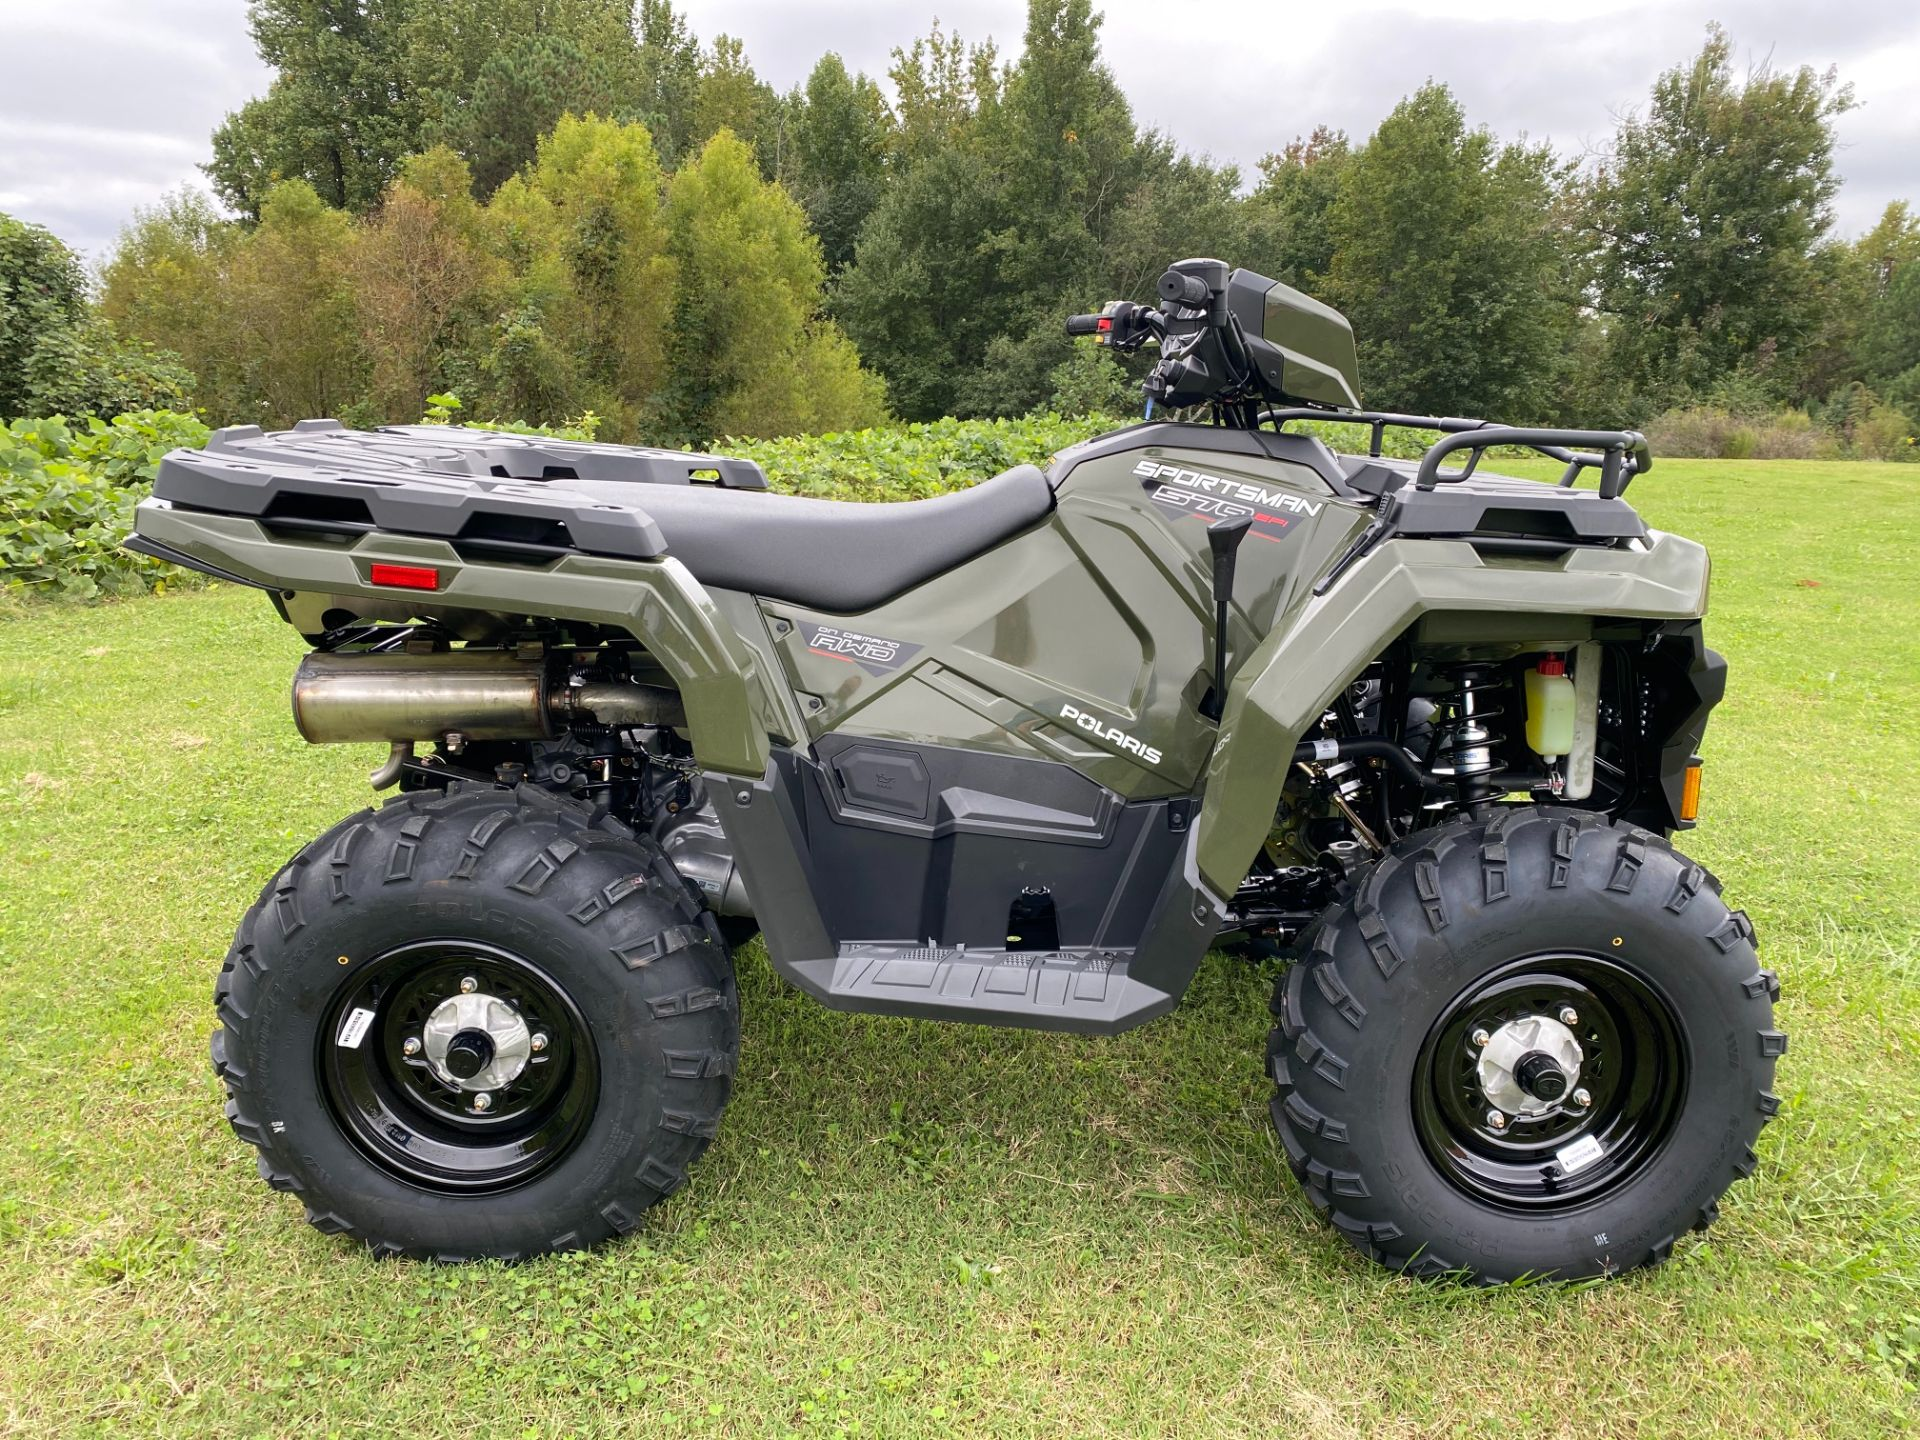 2021 Polaris Sportsman 570 in Greer, South Carolina - Photo 6